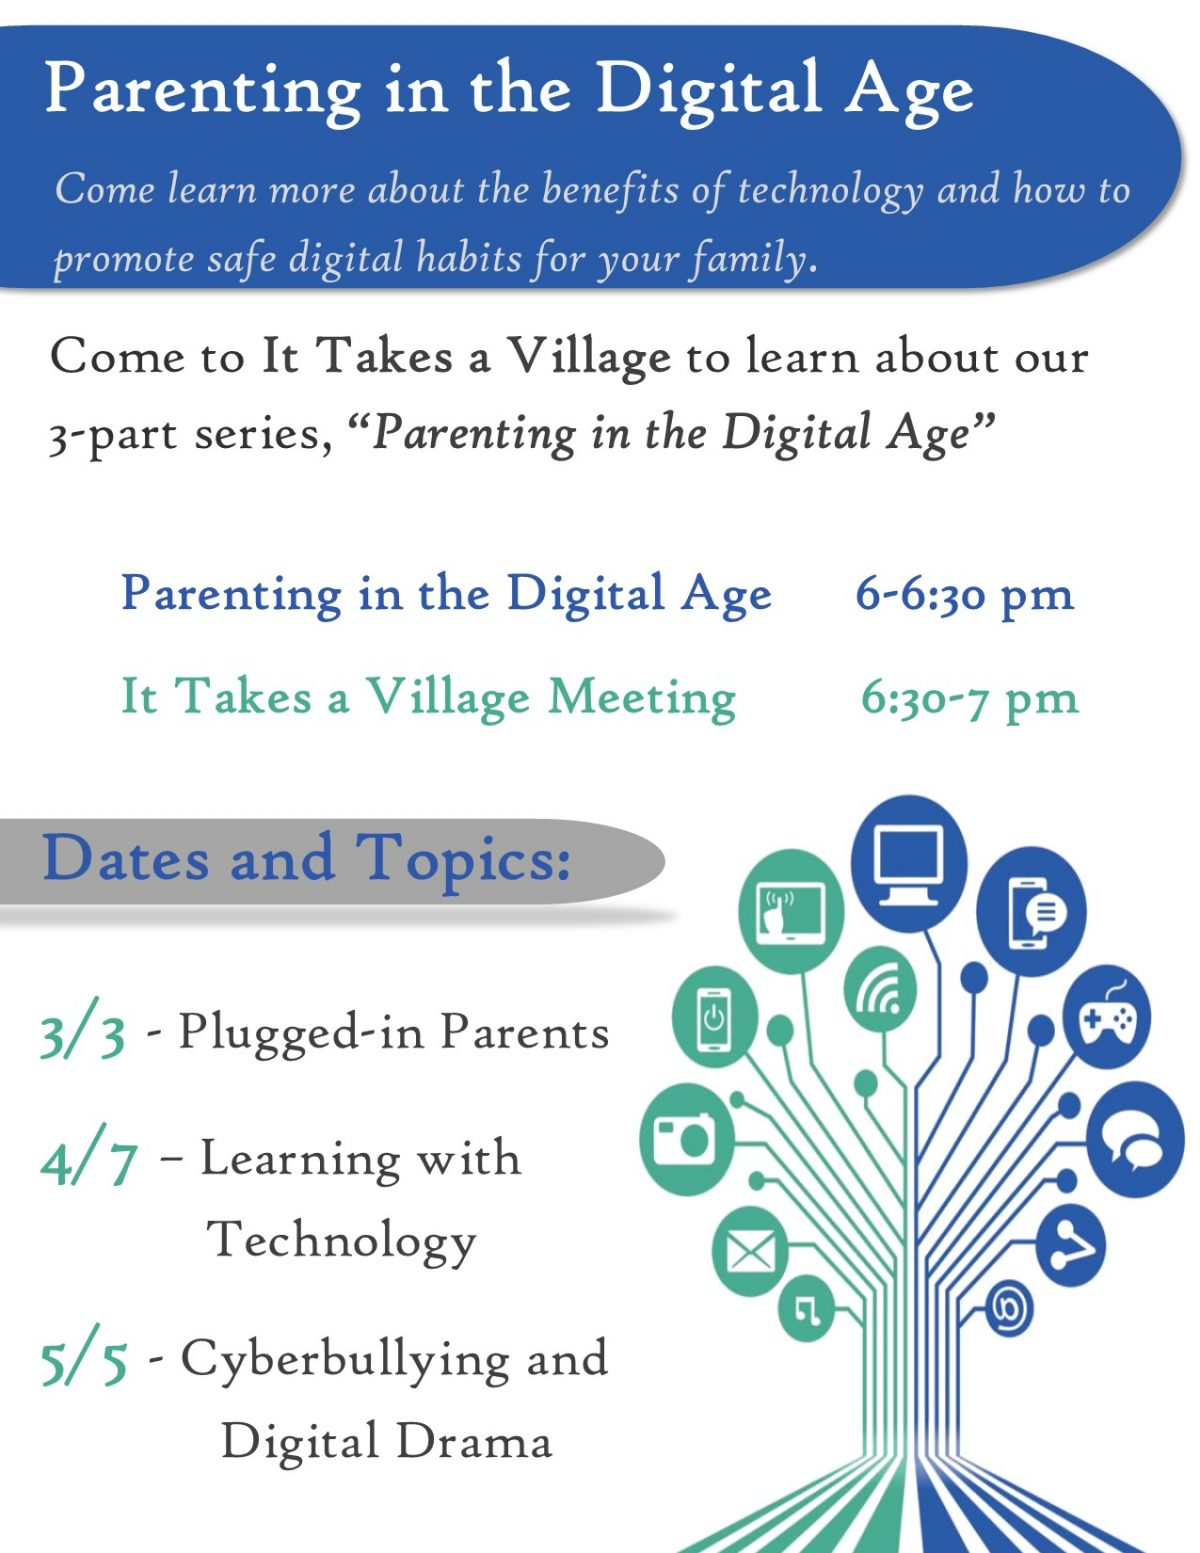 Details about our It Takes a Village Meeting